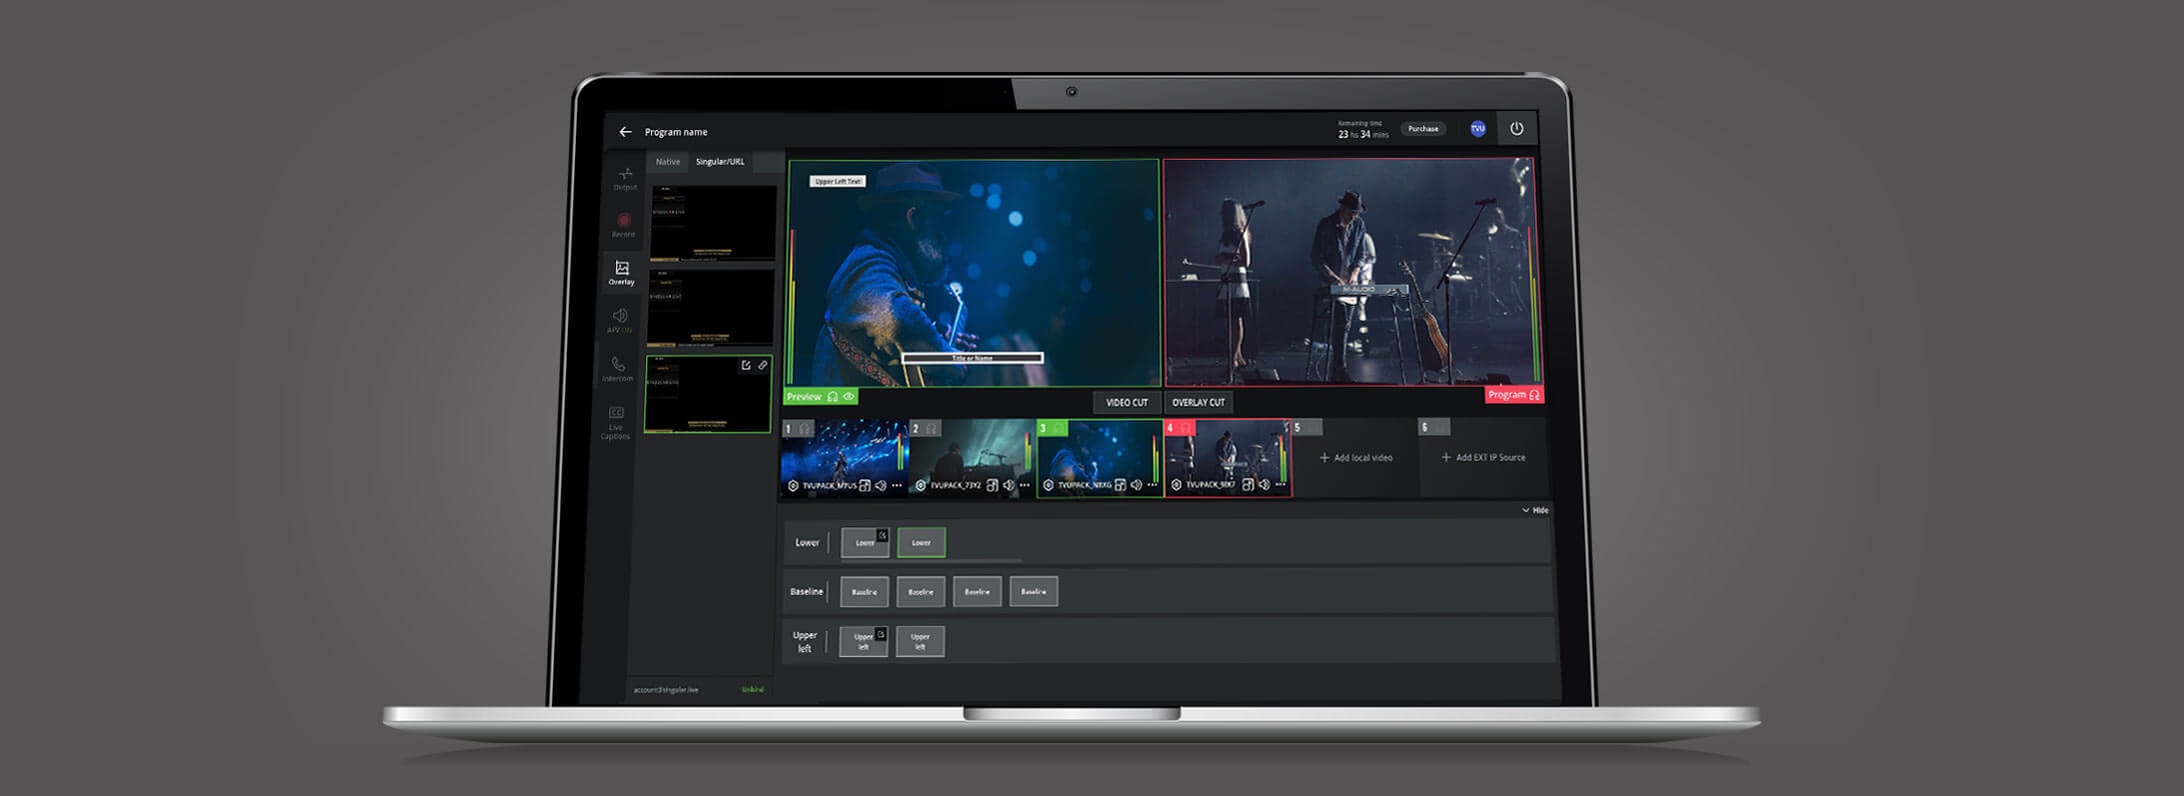 Cloud-based live video production software with live editing and graphics overlays